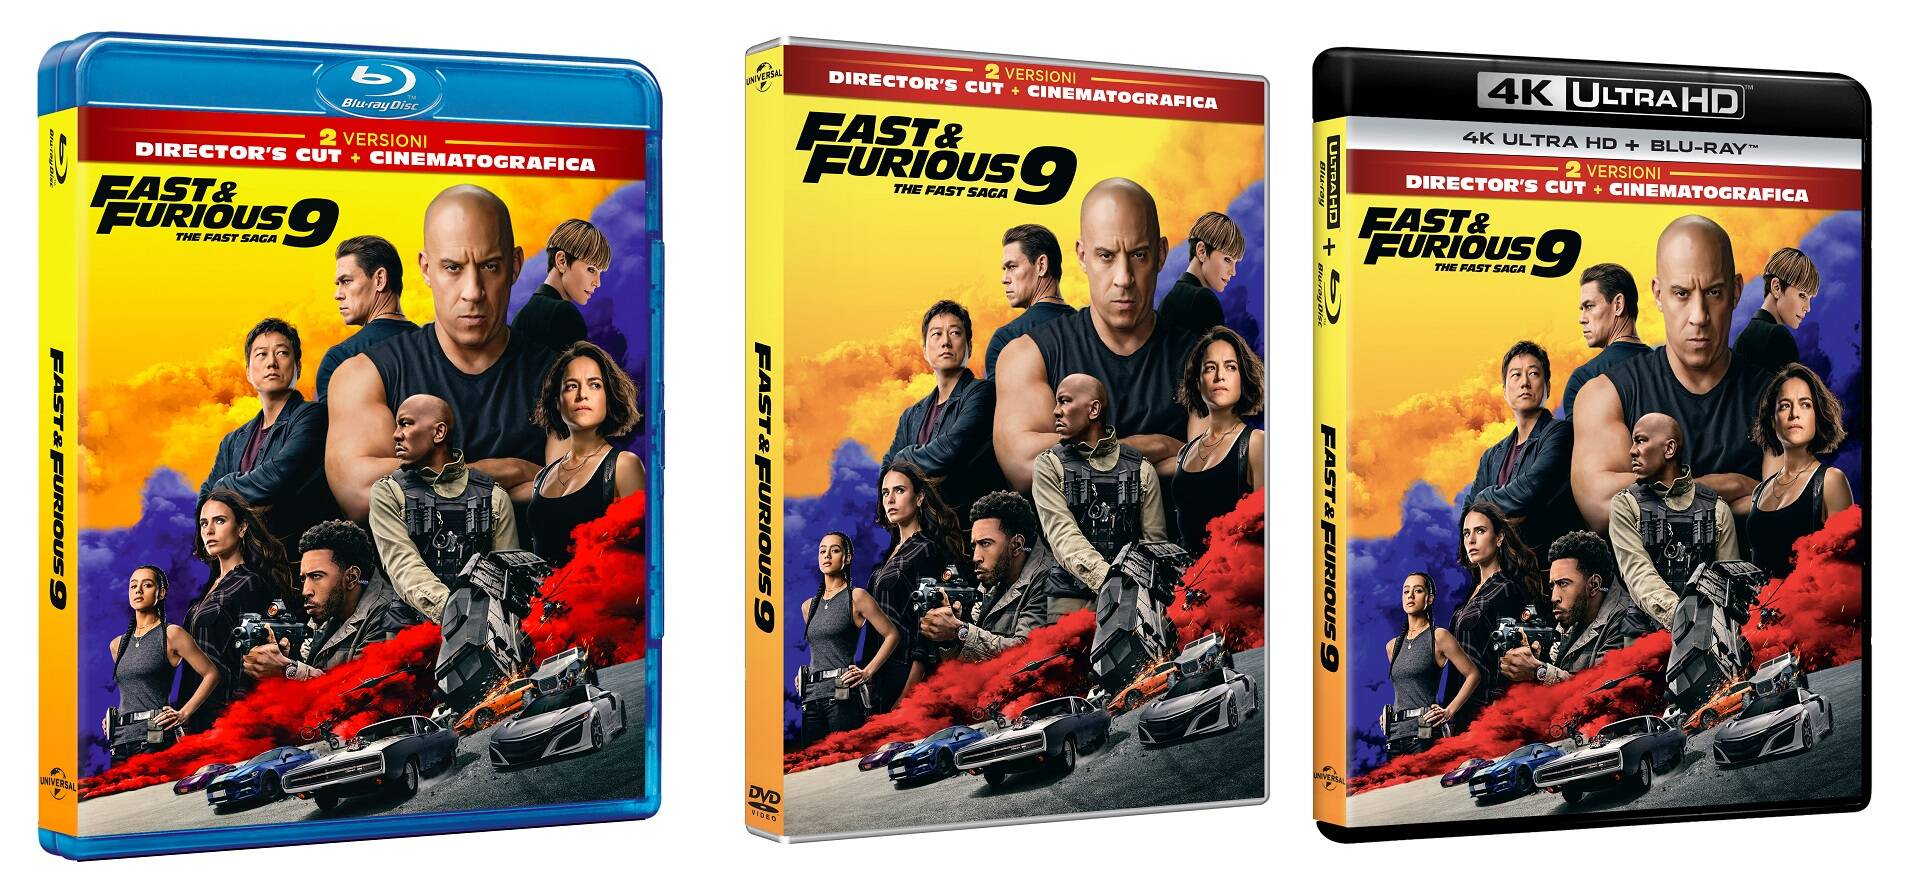 Fast & Furious 9 in home video